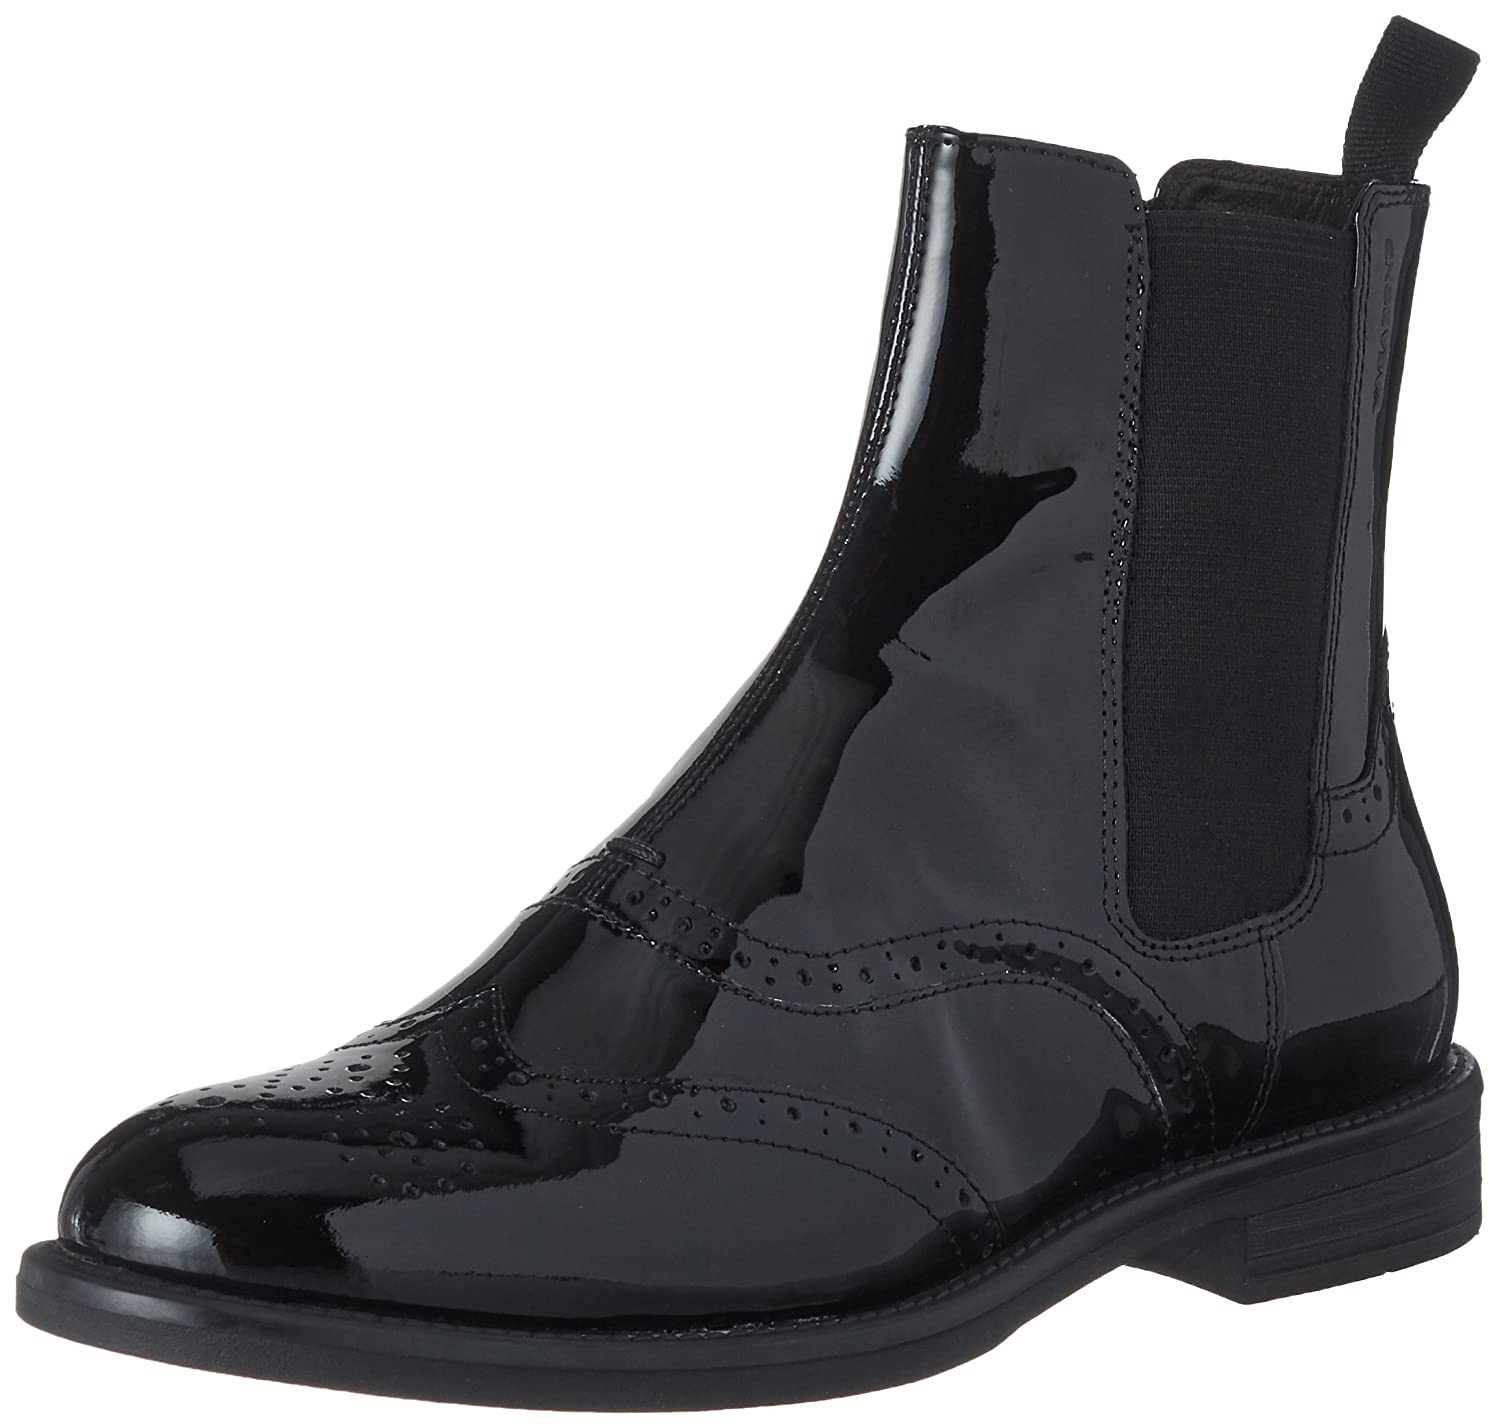 554e8380c4fe2 Vagabond Women's Amina Chelsea Boots, (Black), 38 EU, 5 UK: Amazon.co.uk:  Shoes & Bags